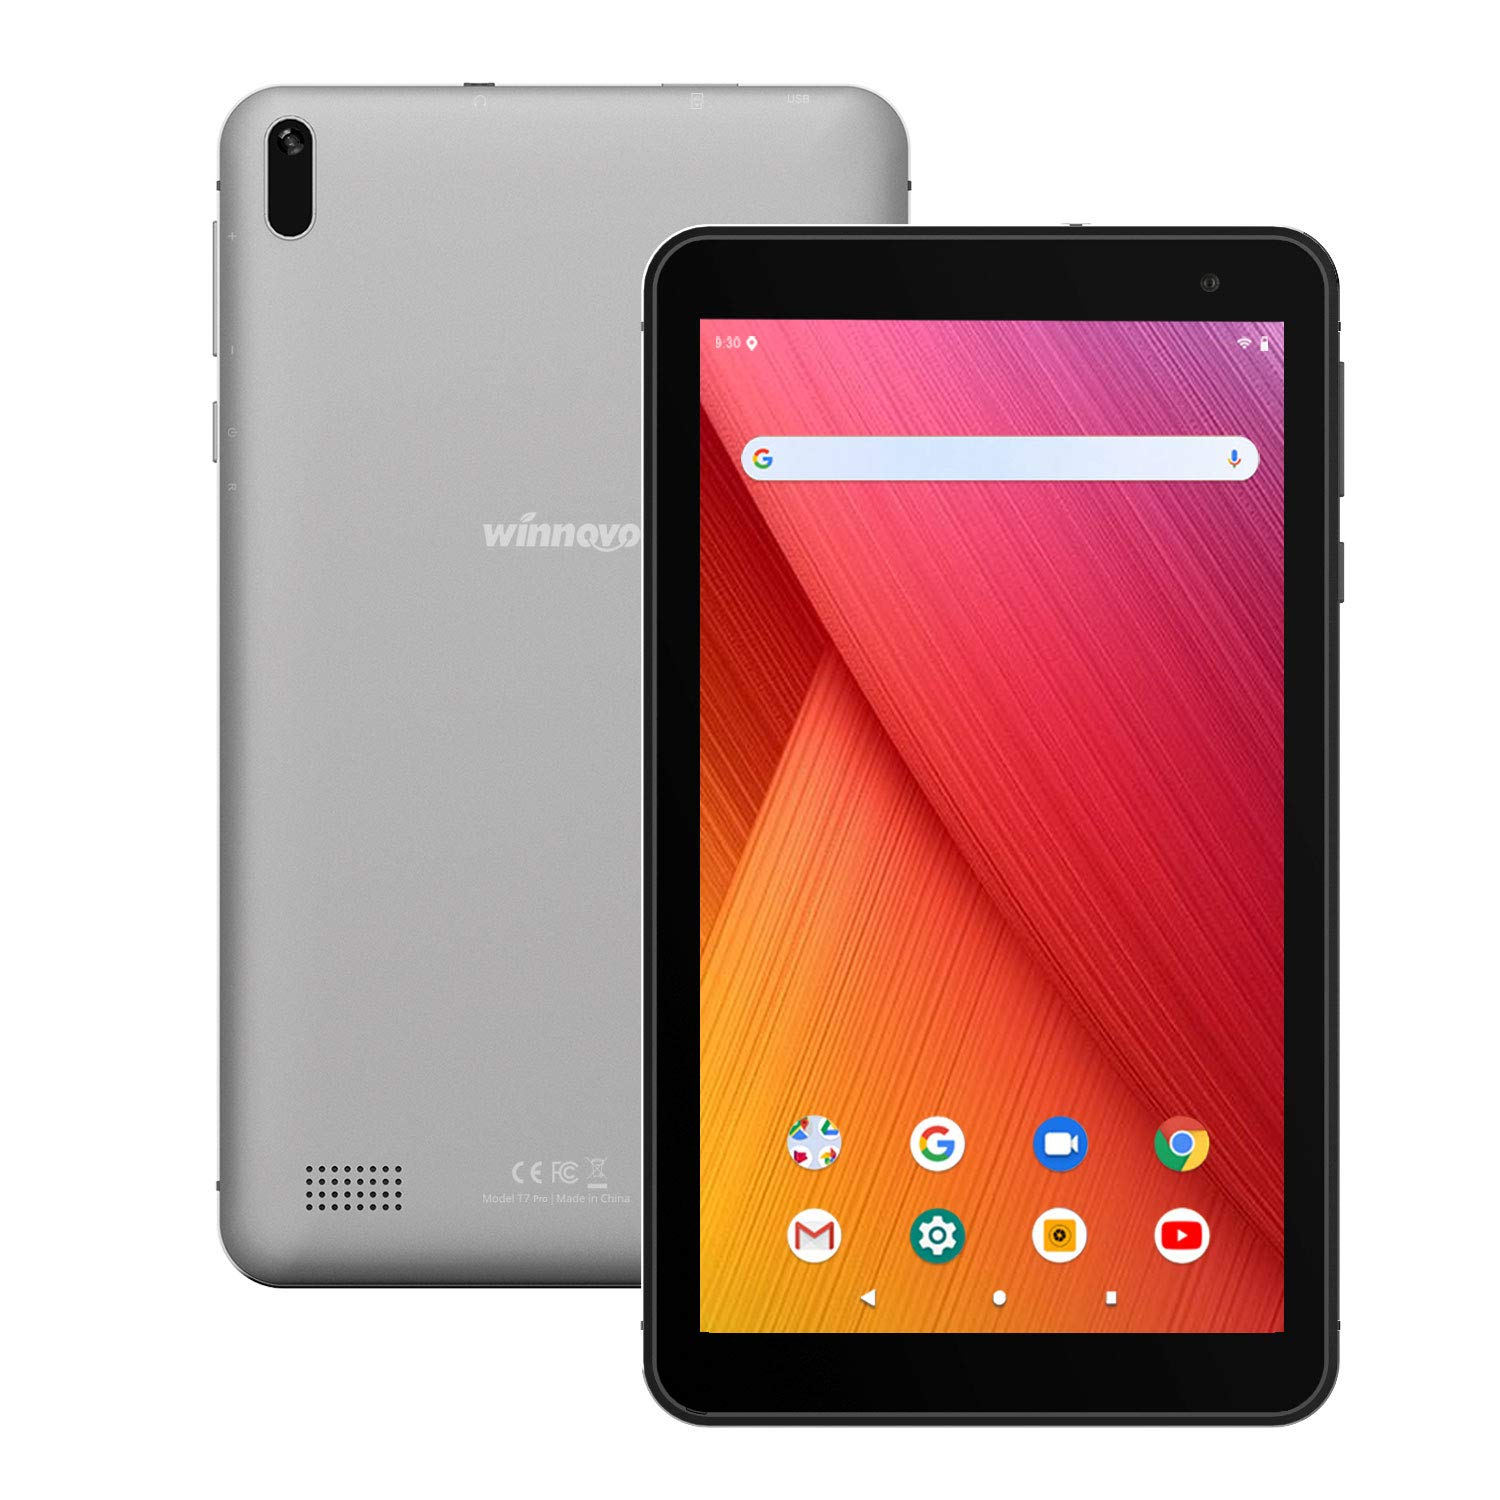 Tablet 7 Inch with Android 9.0 - Winnovo T7 Pro Tablets PC 5G Wi-Fi Quad-Core Processor 2GB RAM 32GB Storage IPS HD Display Bluetooth GPS FM (Grey)